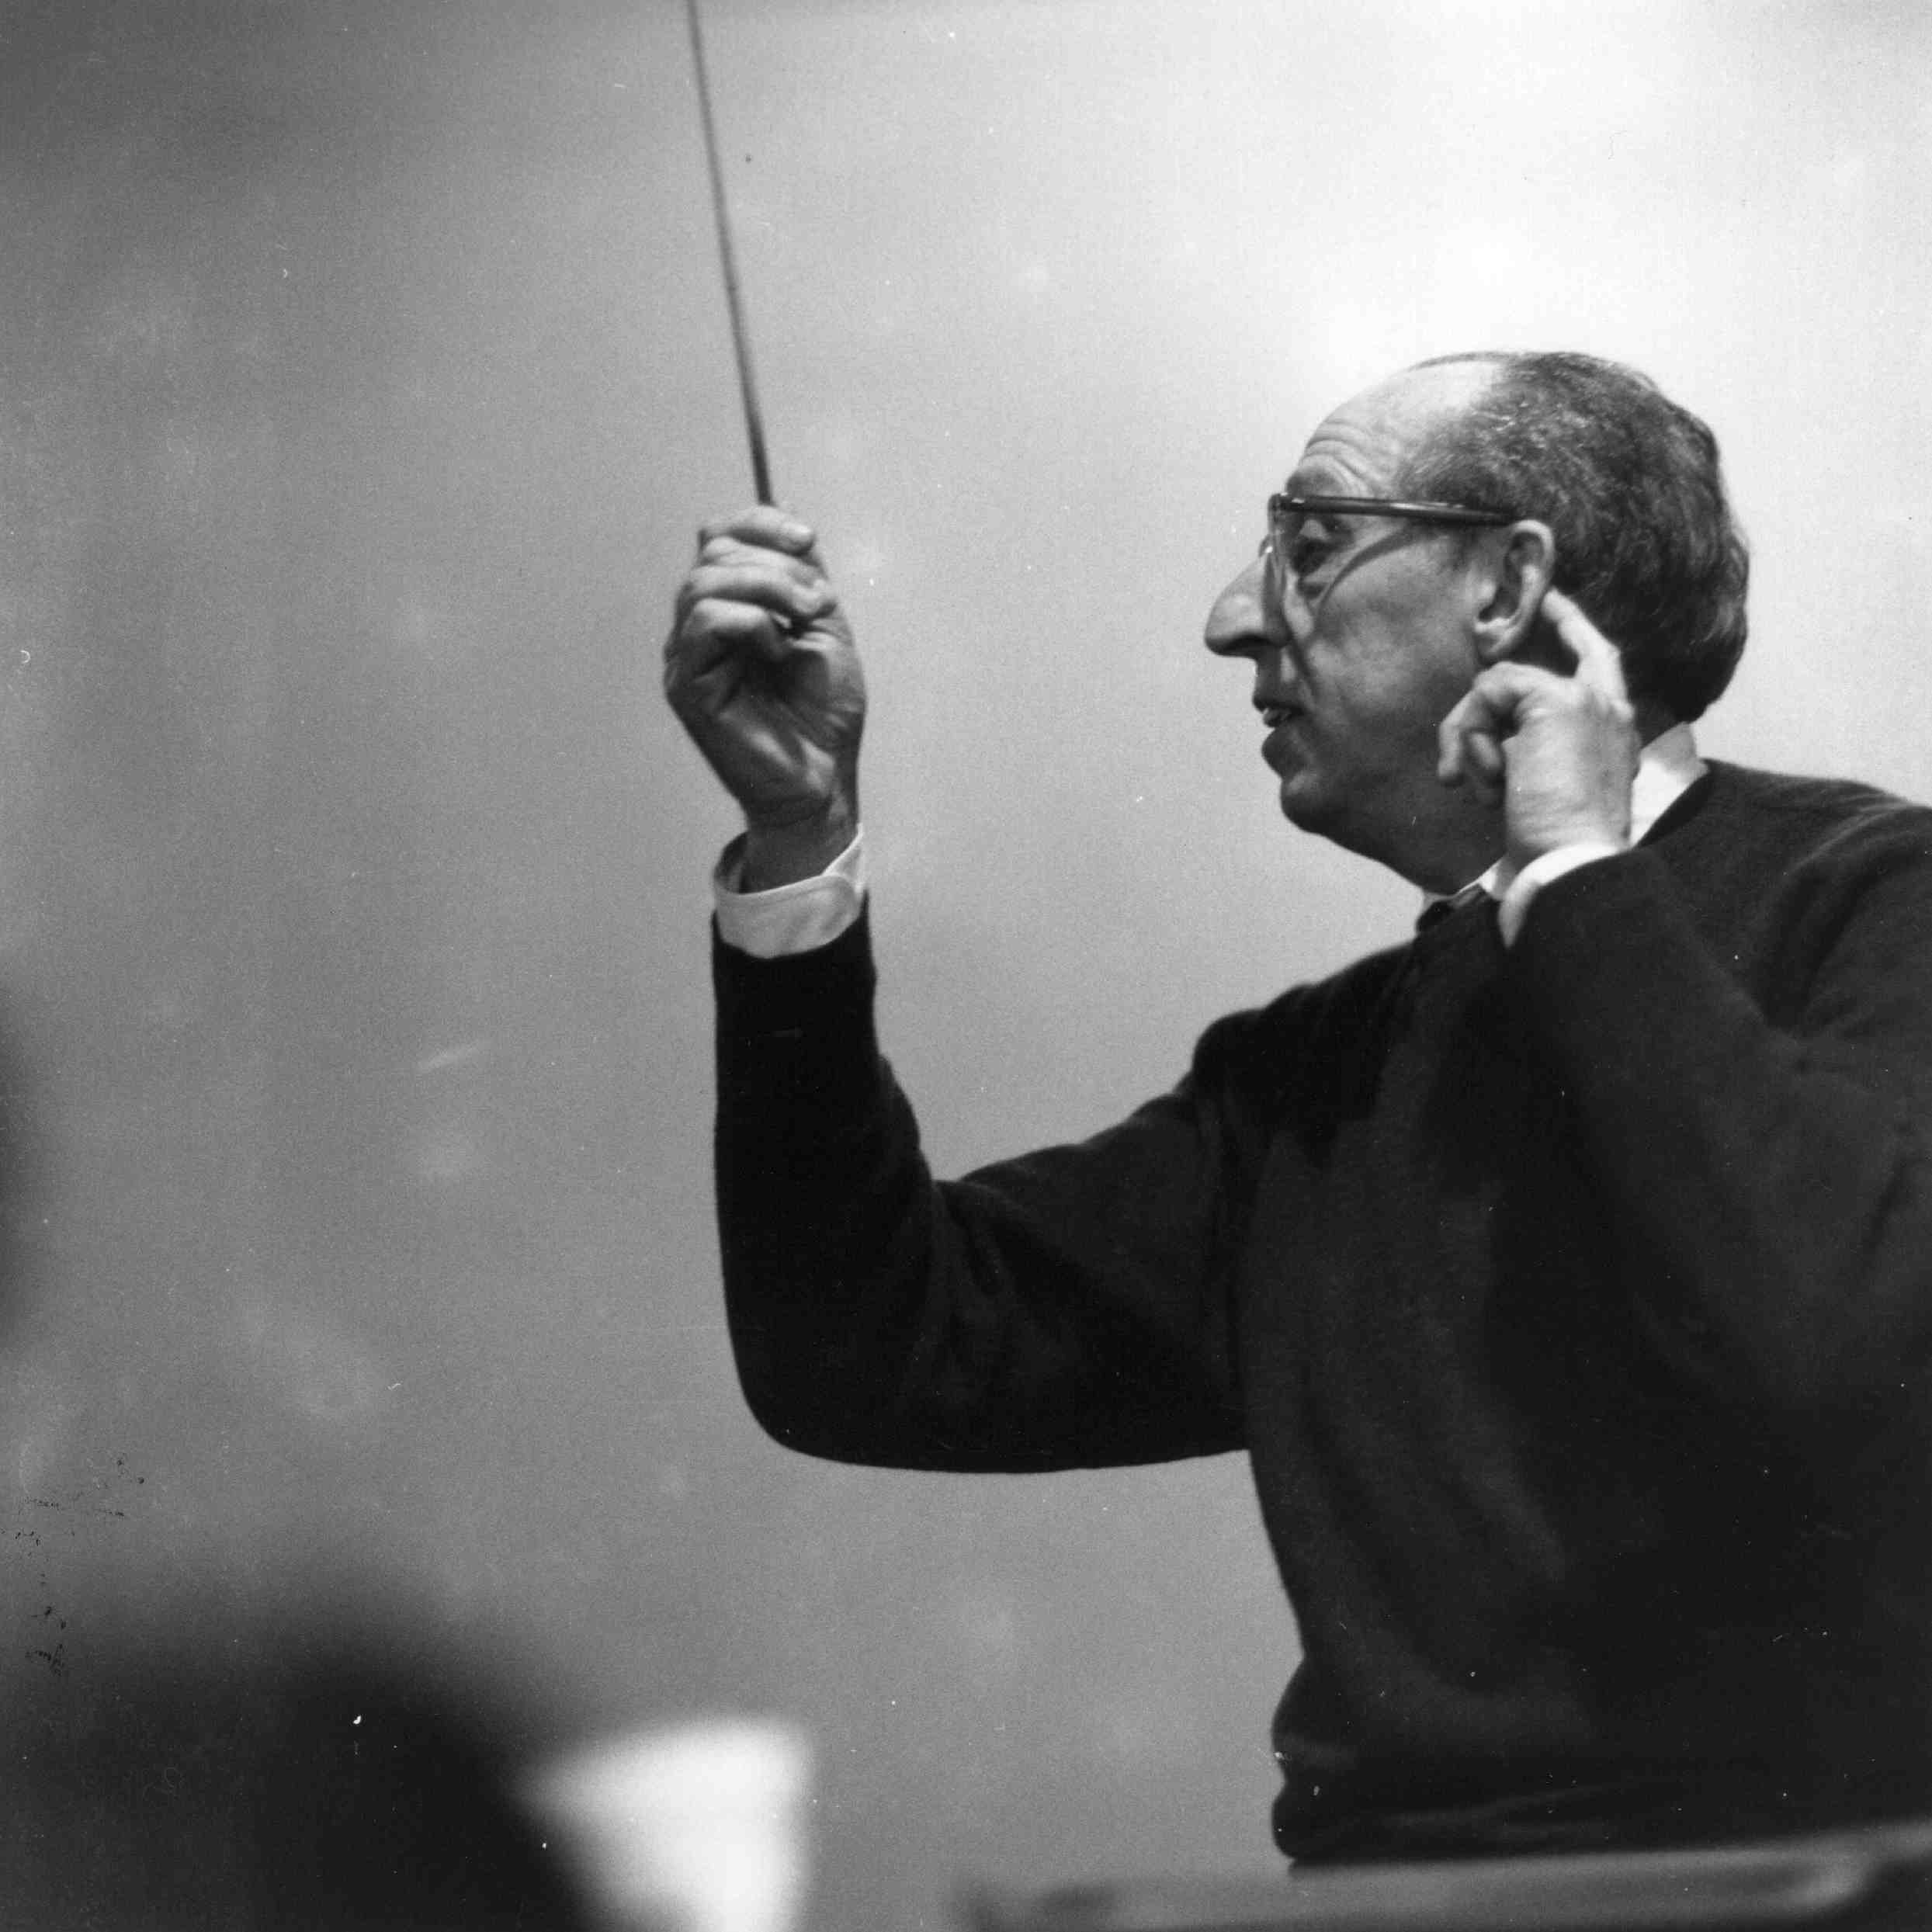 Aaron Copland conducts an orchestra